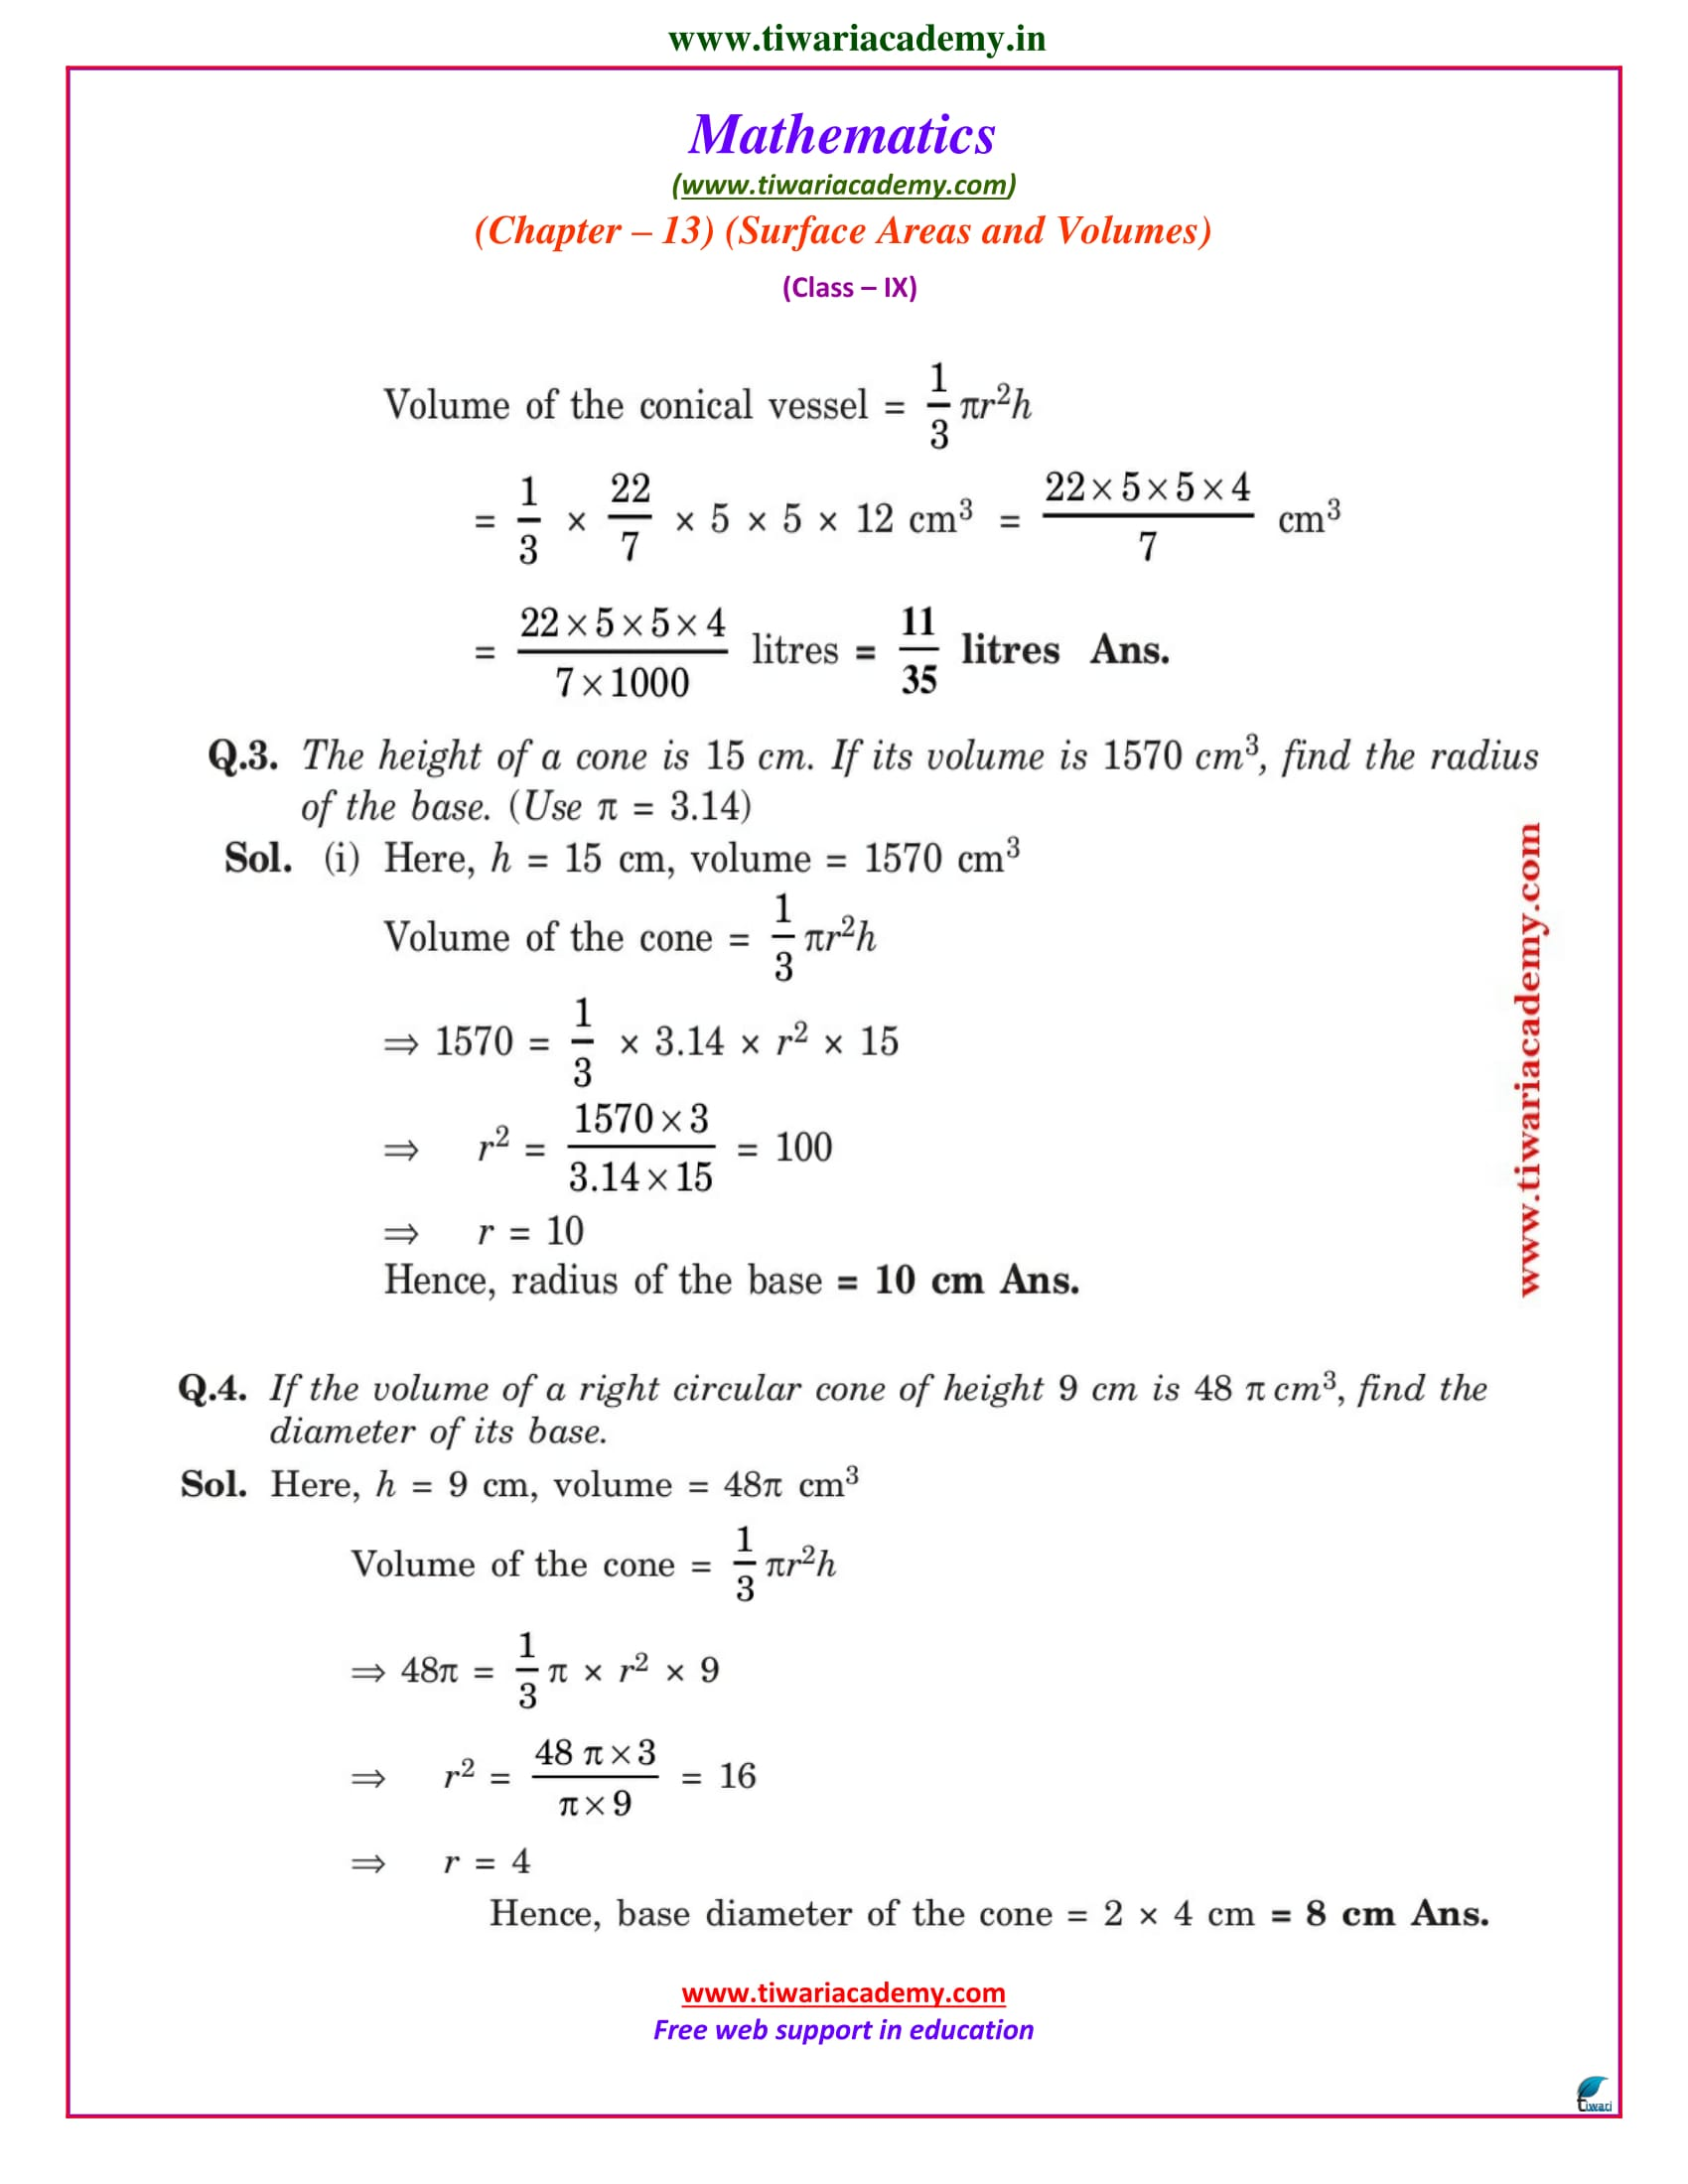 9 maths chapter 13 exercise 13.7 solutions